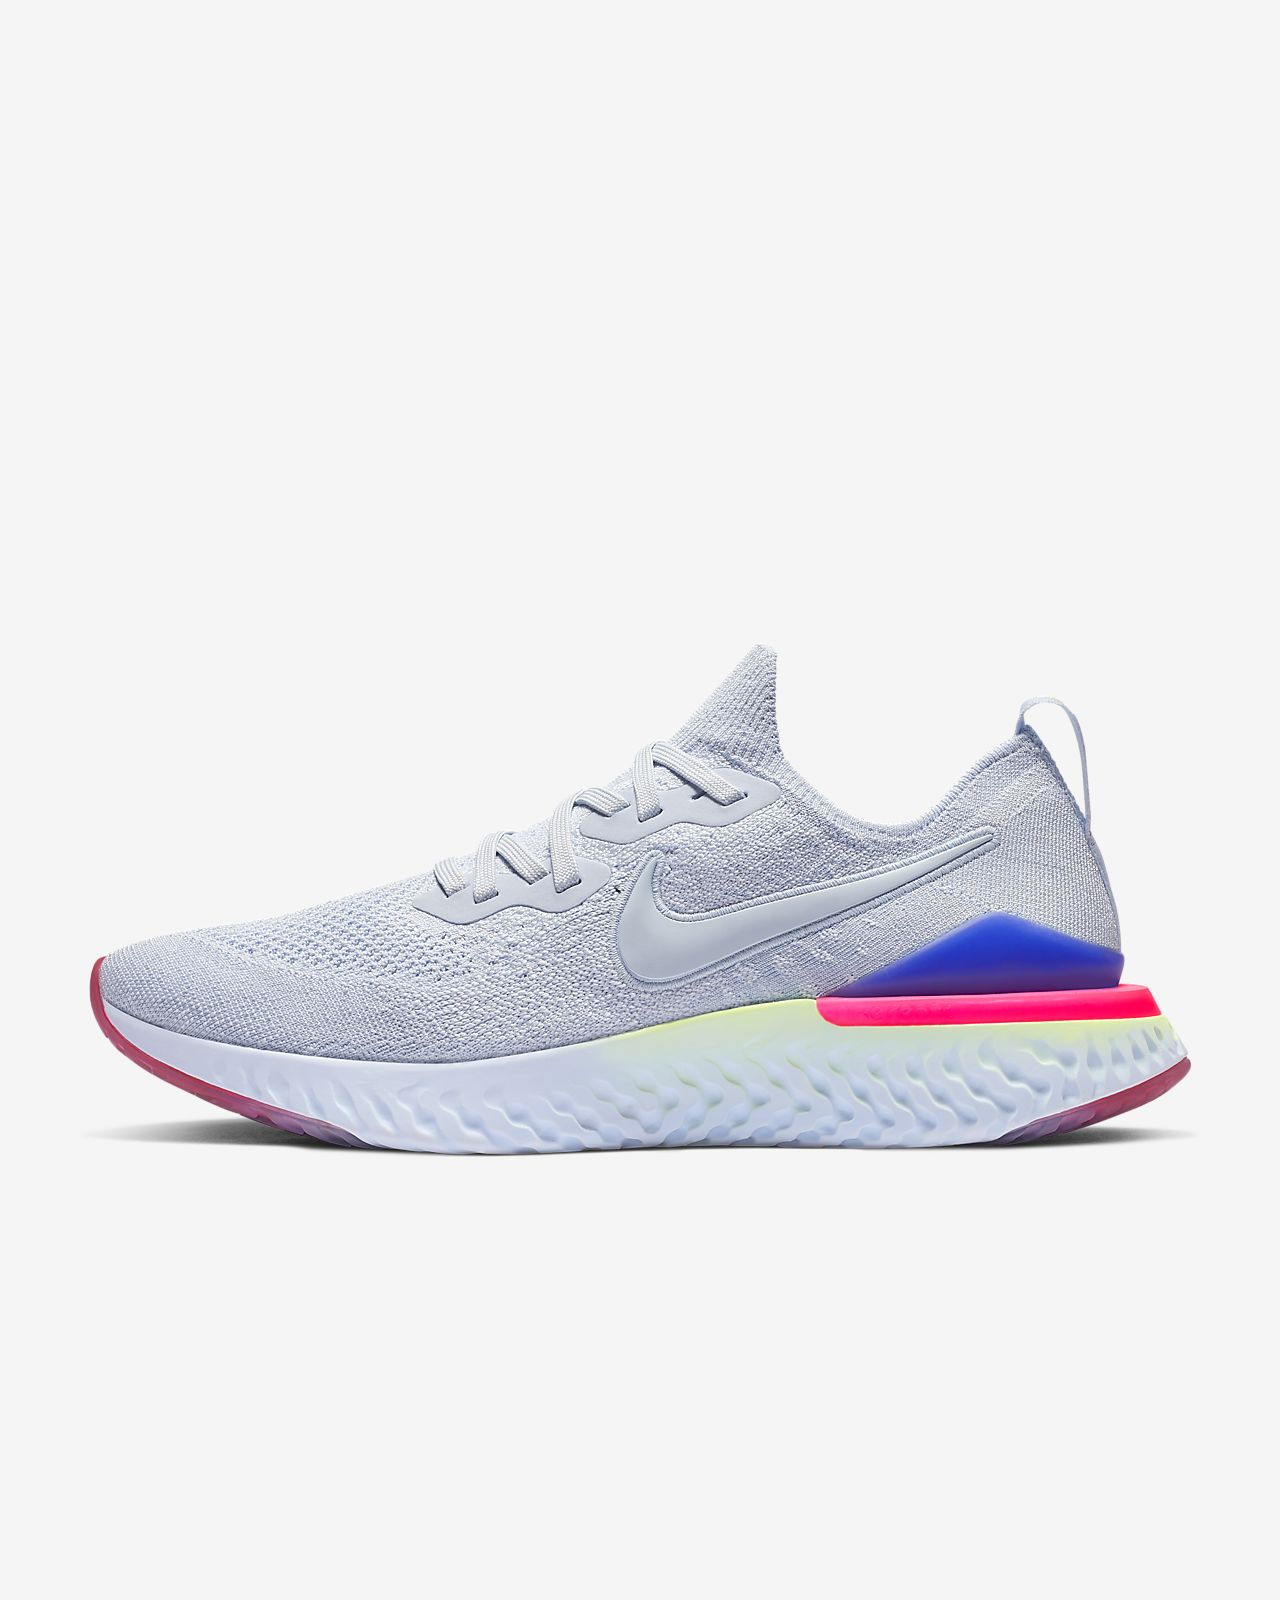 uk availability 999b9 d70a4 ... Nike Epic React Flyknit 2 Women s Running Shoe